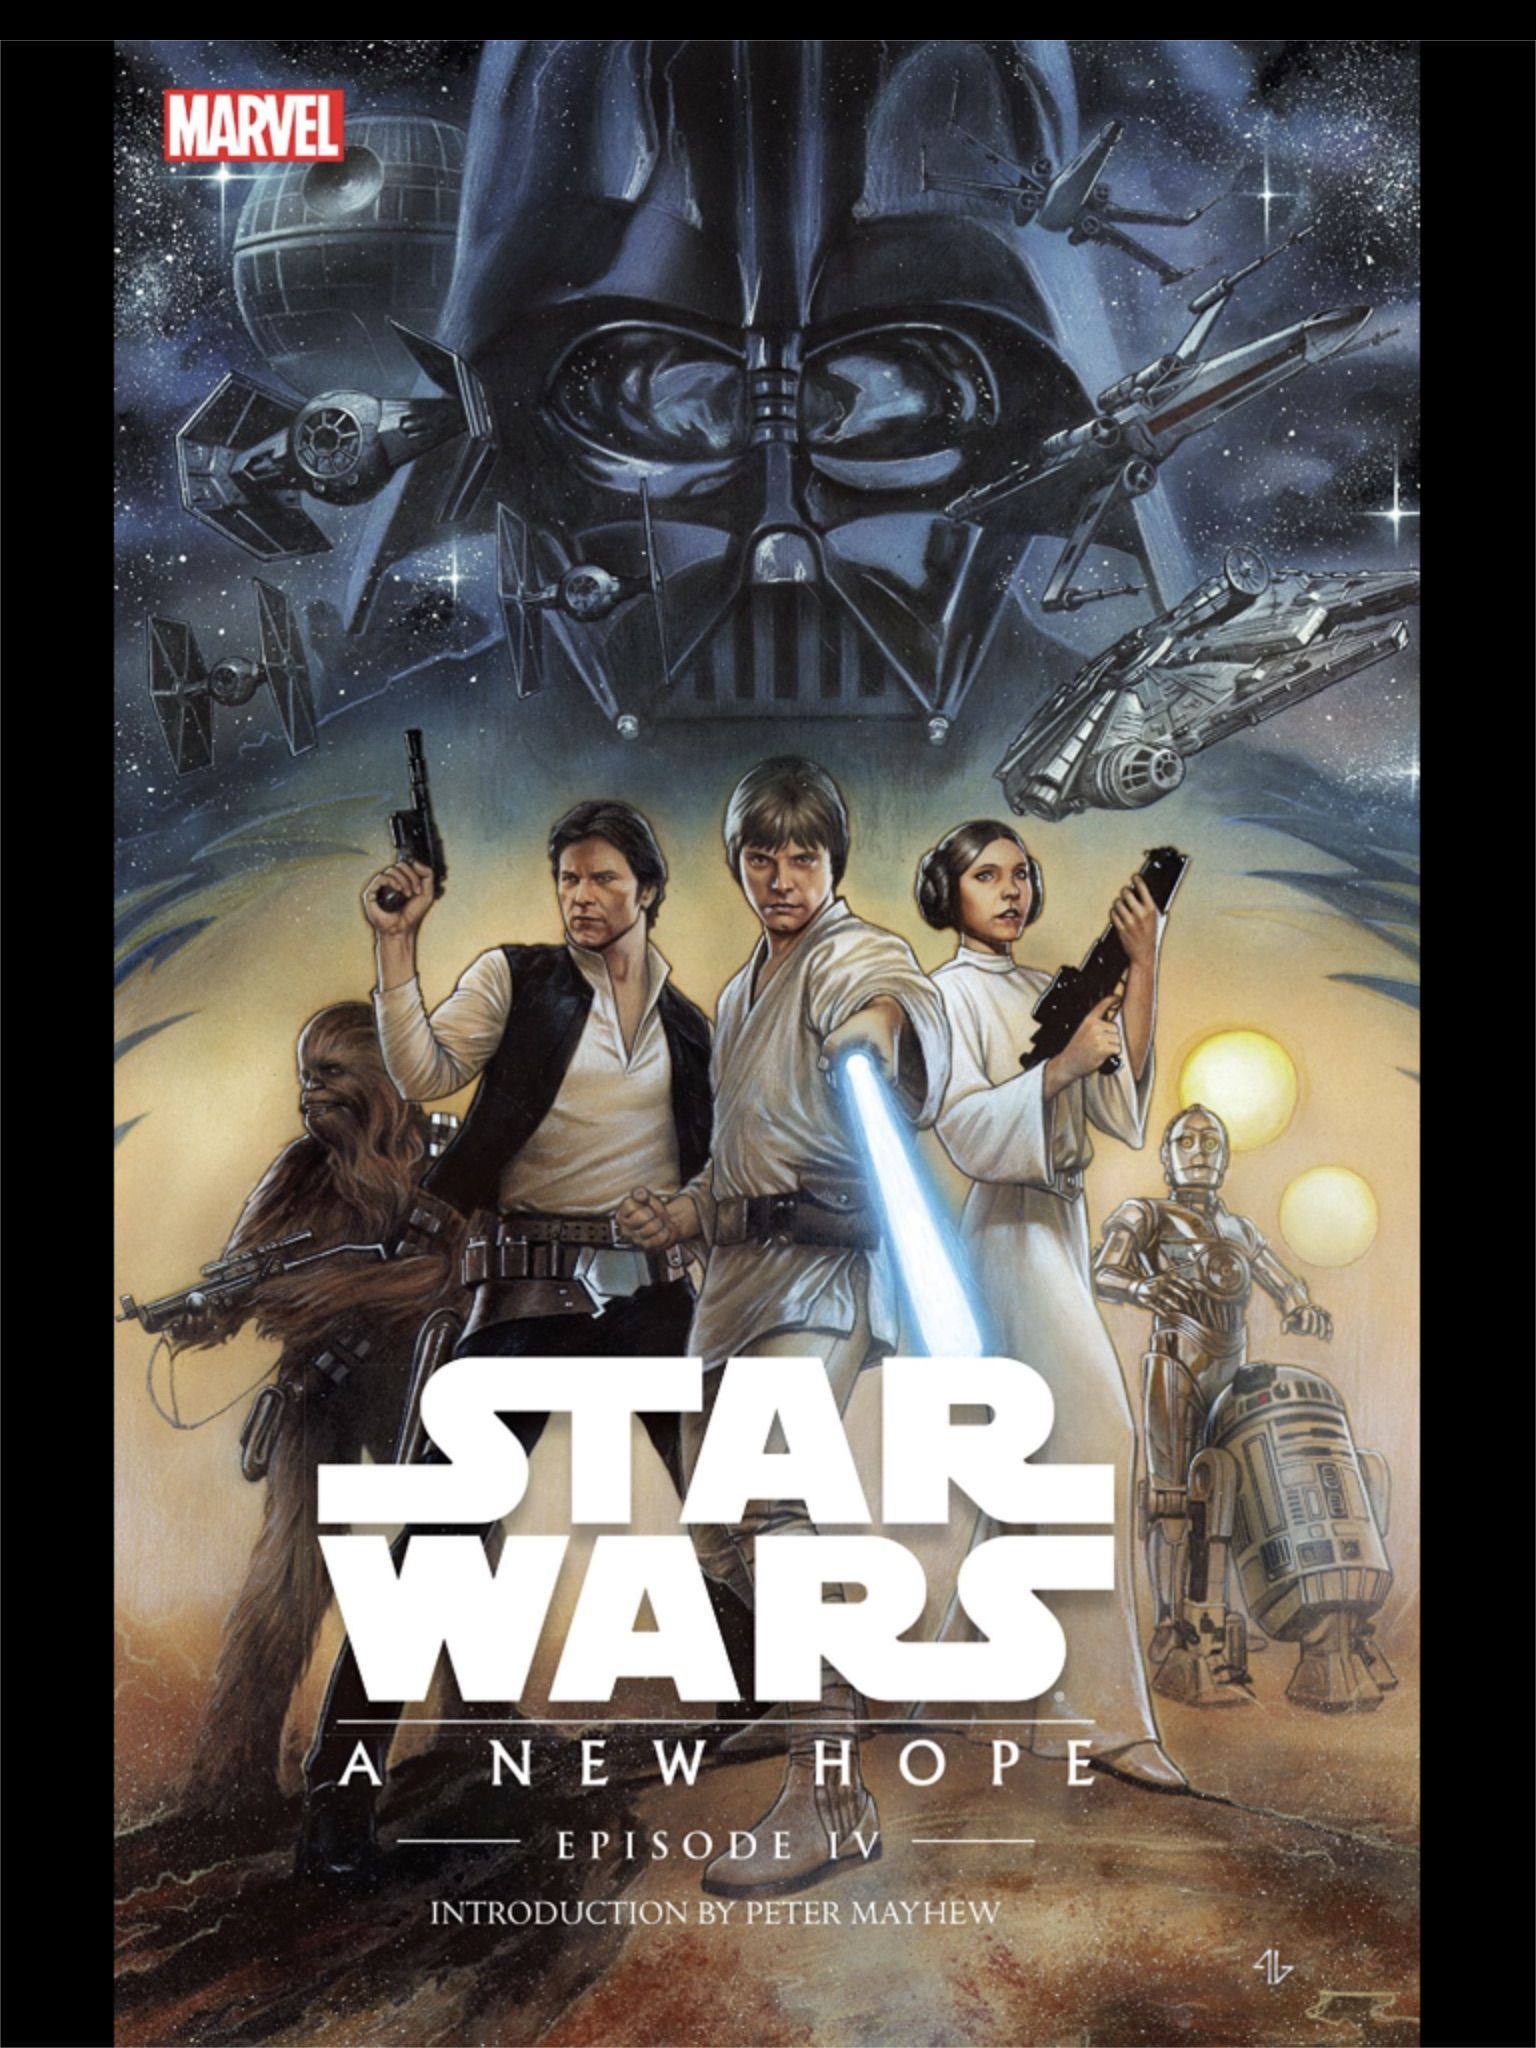 Pin By Wgabsher On Comic Book Covers Star Wars Episode 4 Star Wars Episode Iv Star Wars Poster